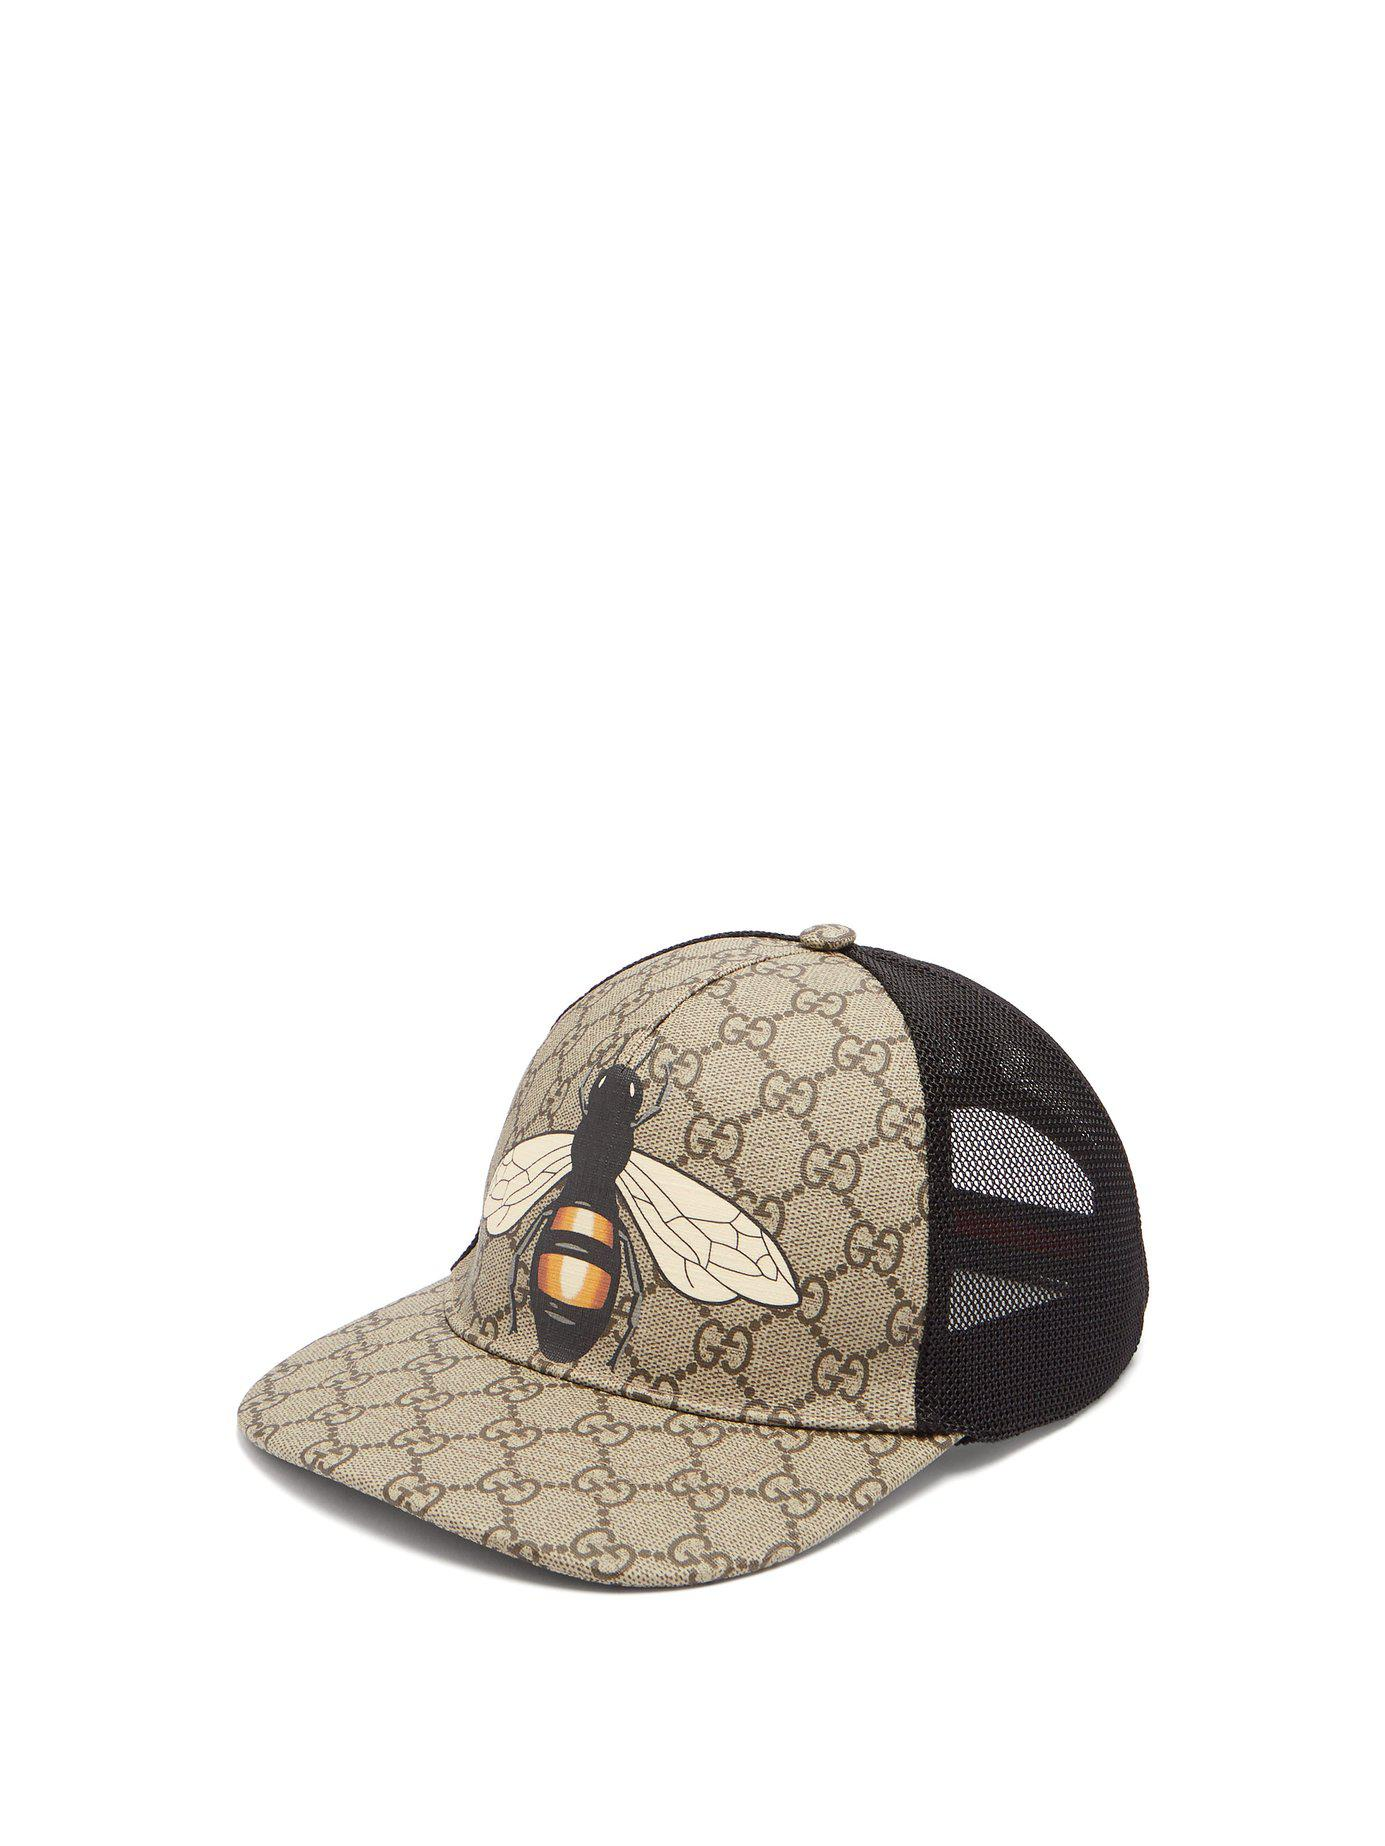 308ae8b9fa9 Lyst - Gucci Gg And Bee Print Mesh Hat in Natural for Men